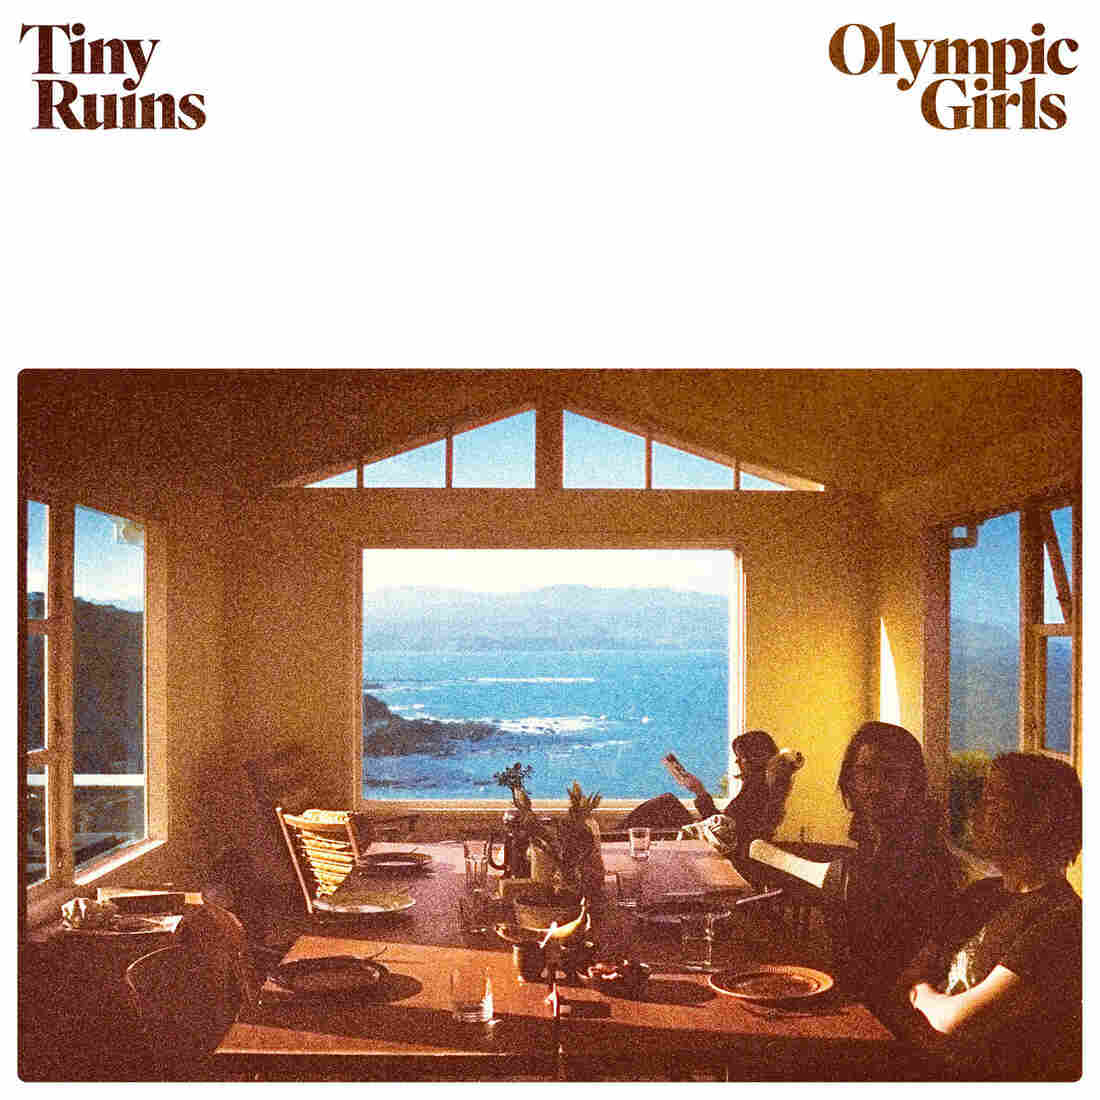 Tiny Ruins, Olympic Girls